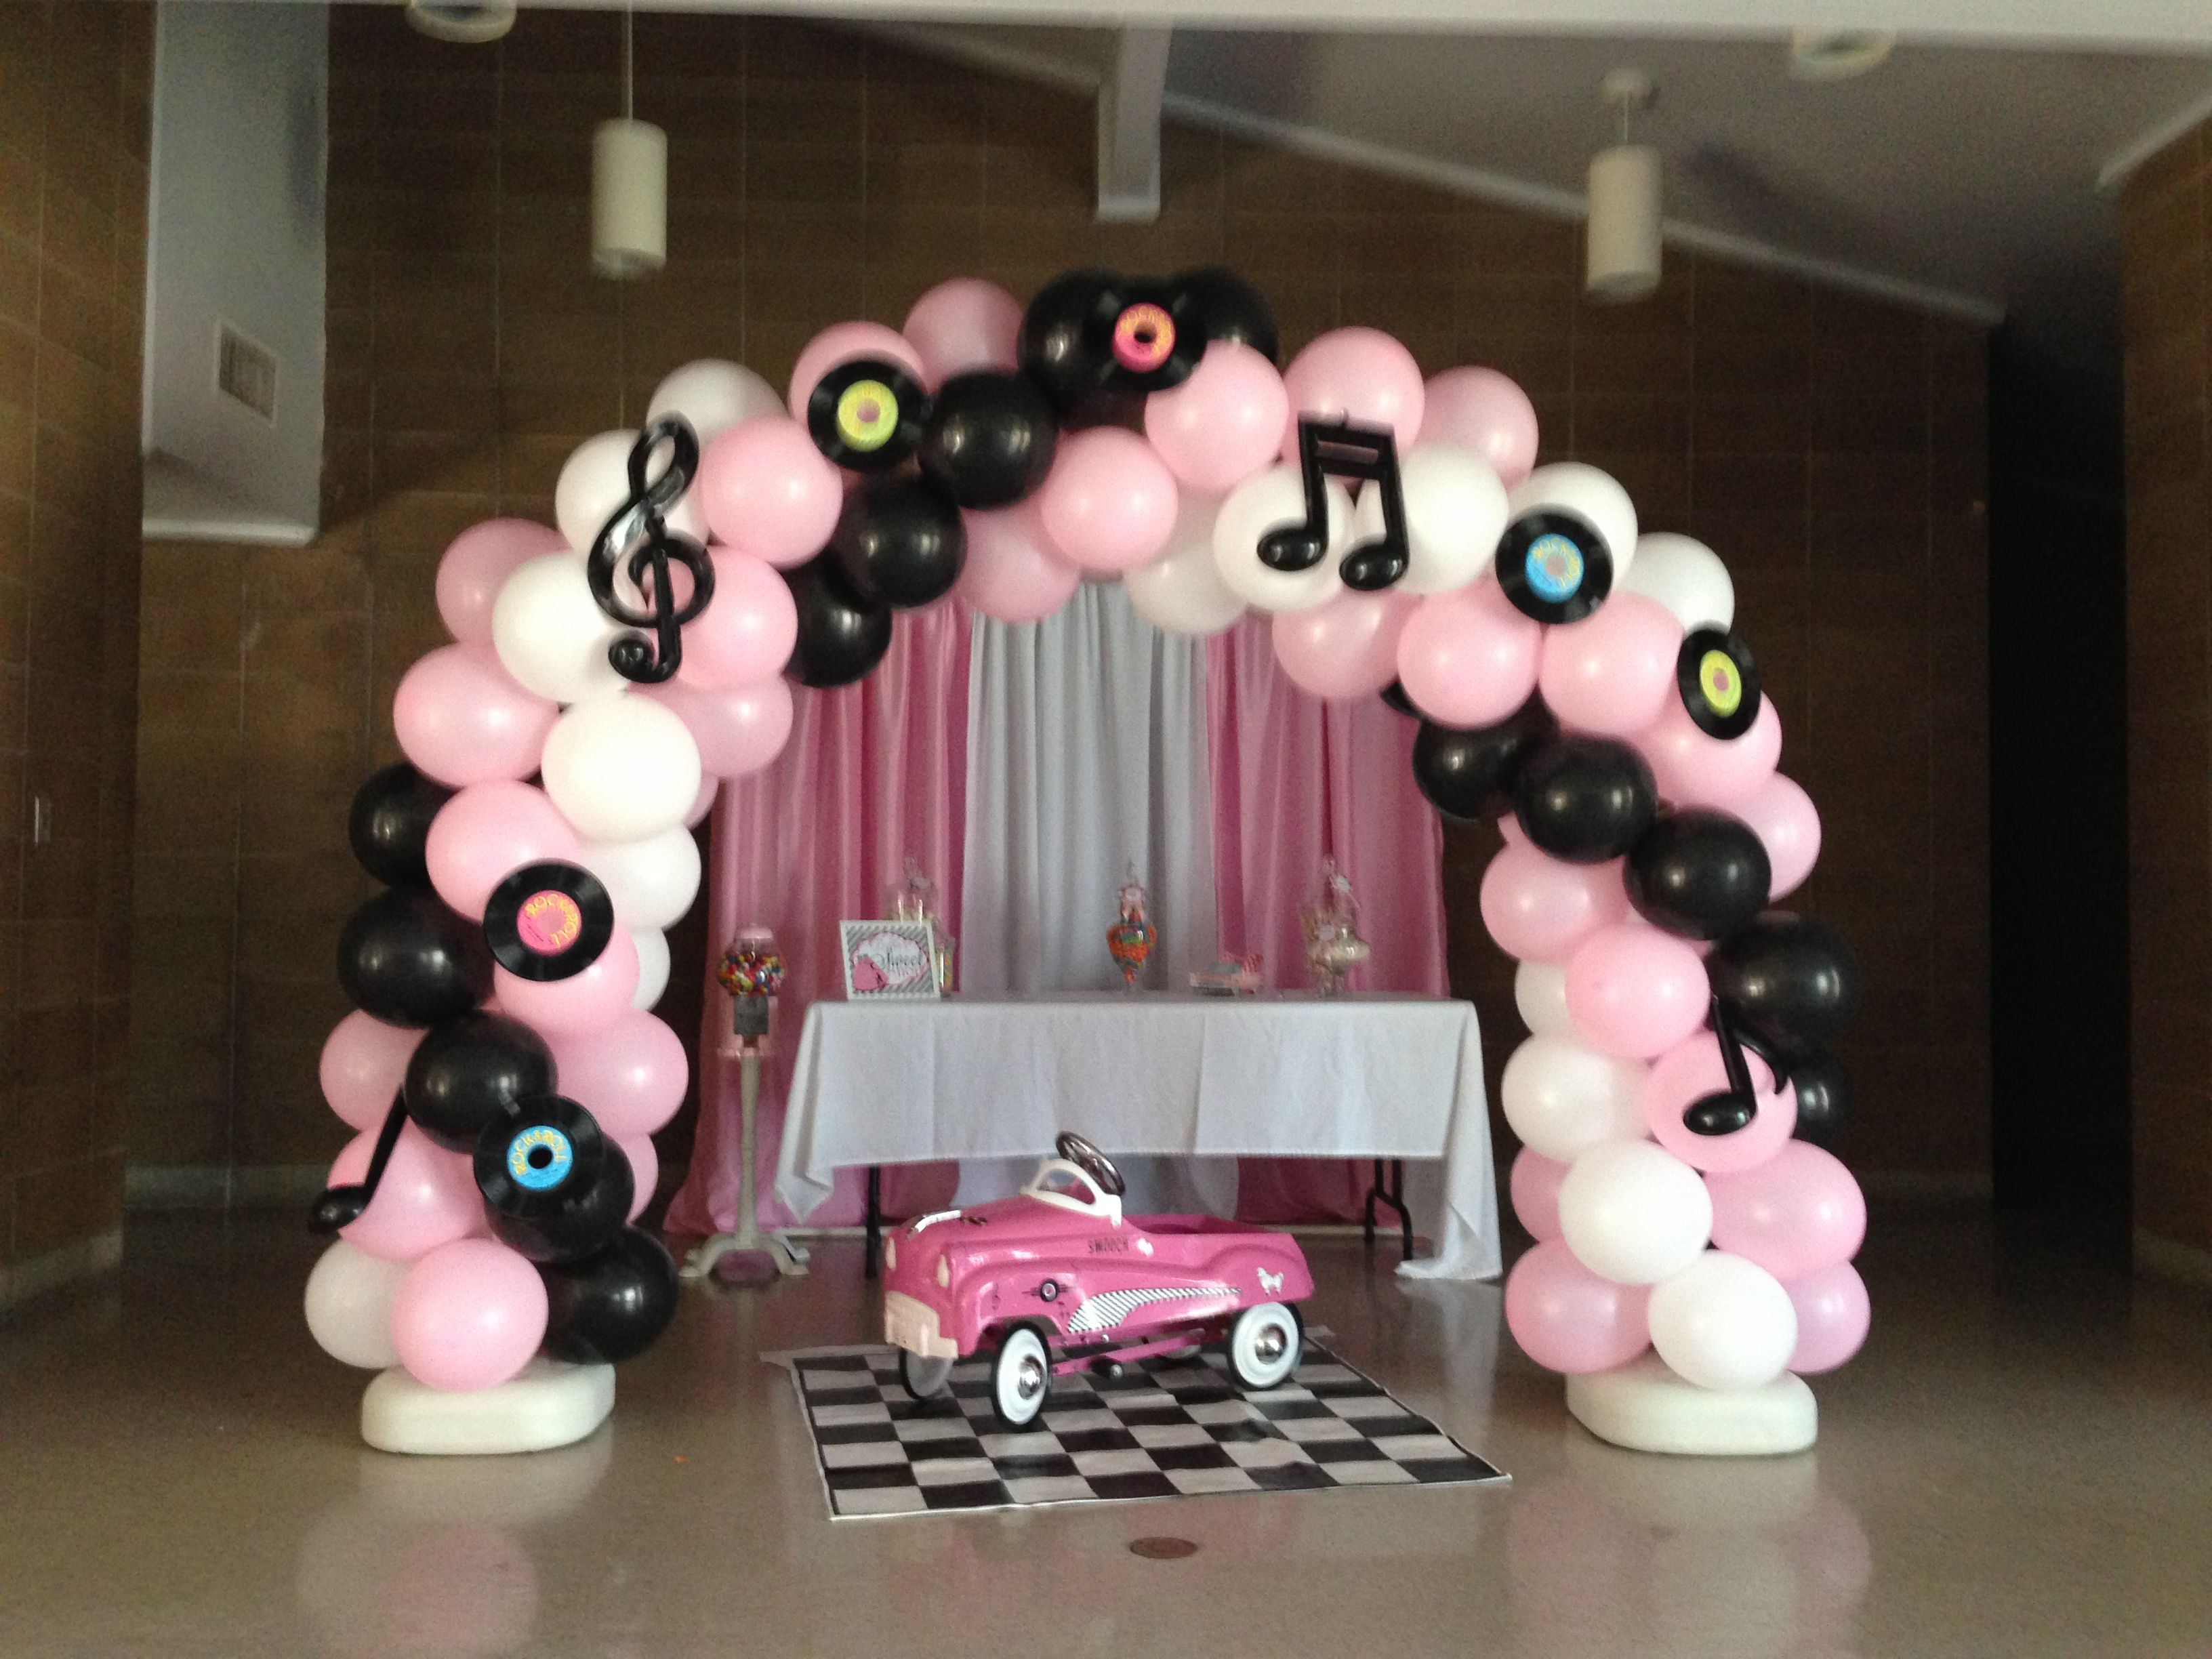 wwwfacebookcombuggysballoondecor 50s Theme Birthday Party